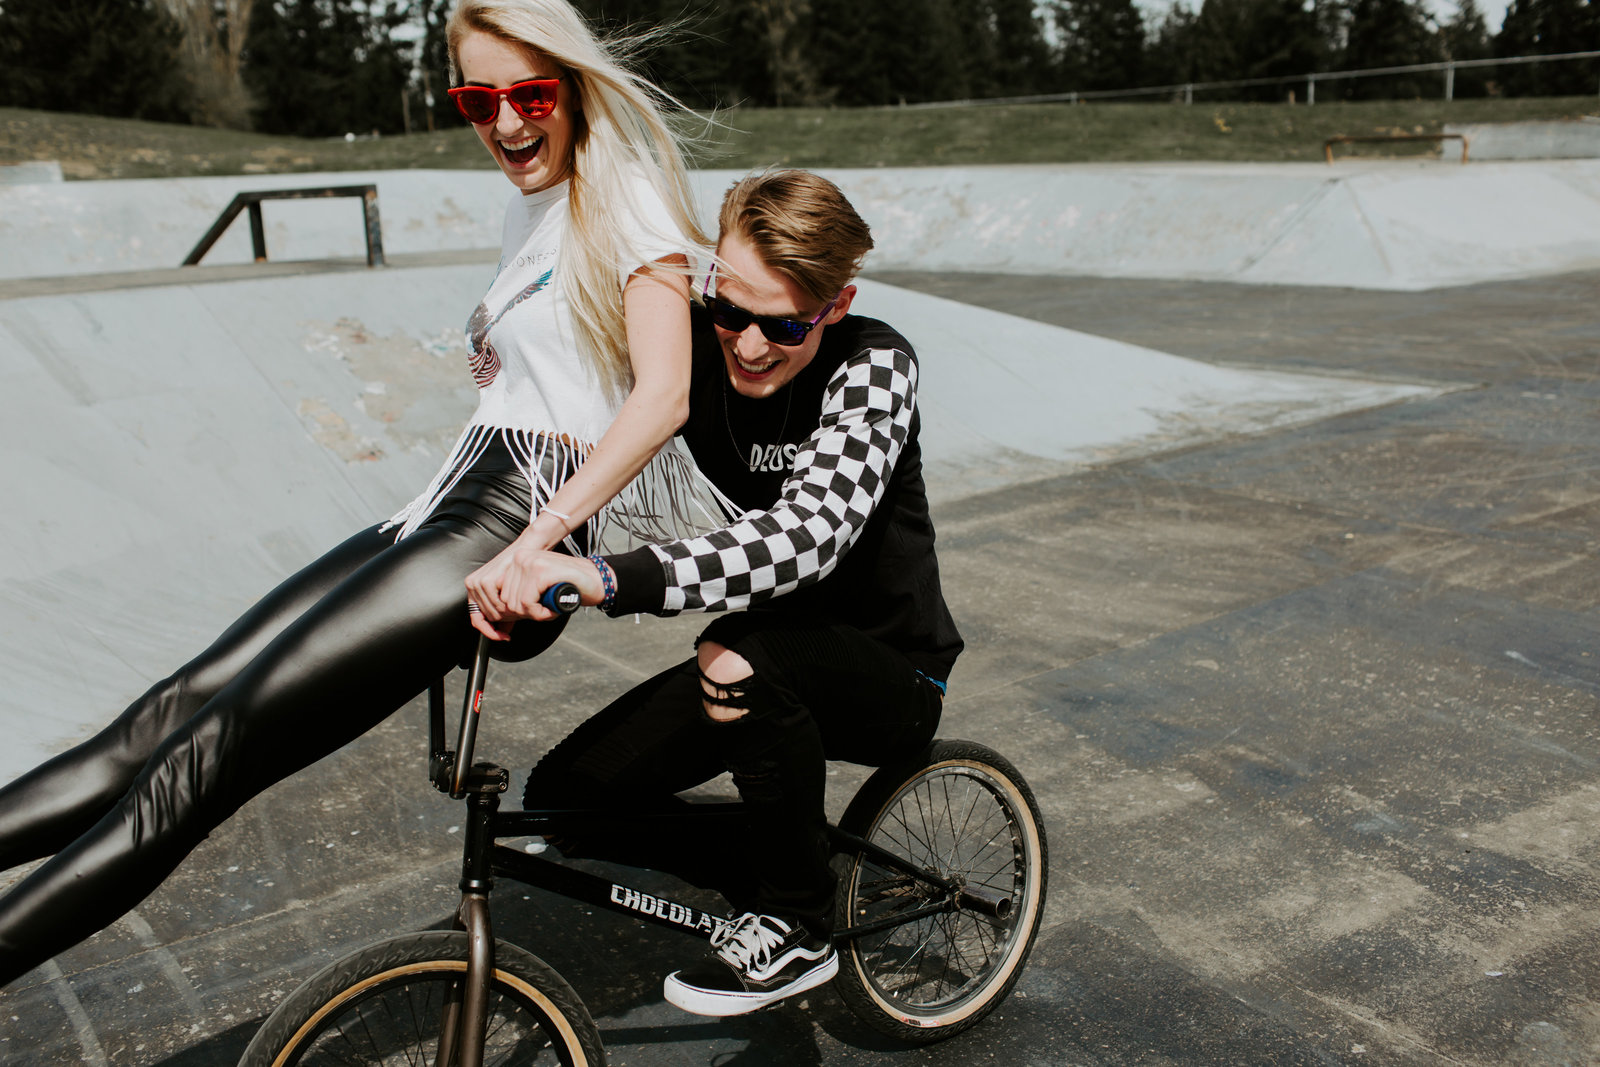 SKATE-PARK-ENGAGEMENT-MEGHAN-HEMSTRA-PHOTOGRAPHY-8